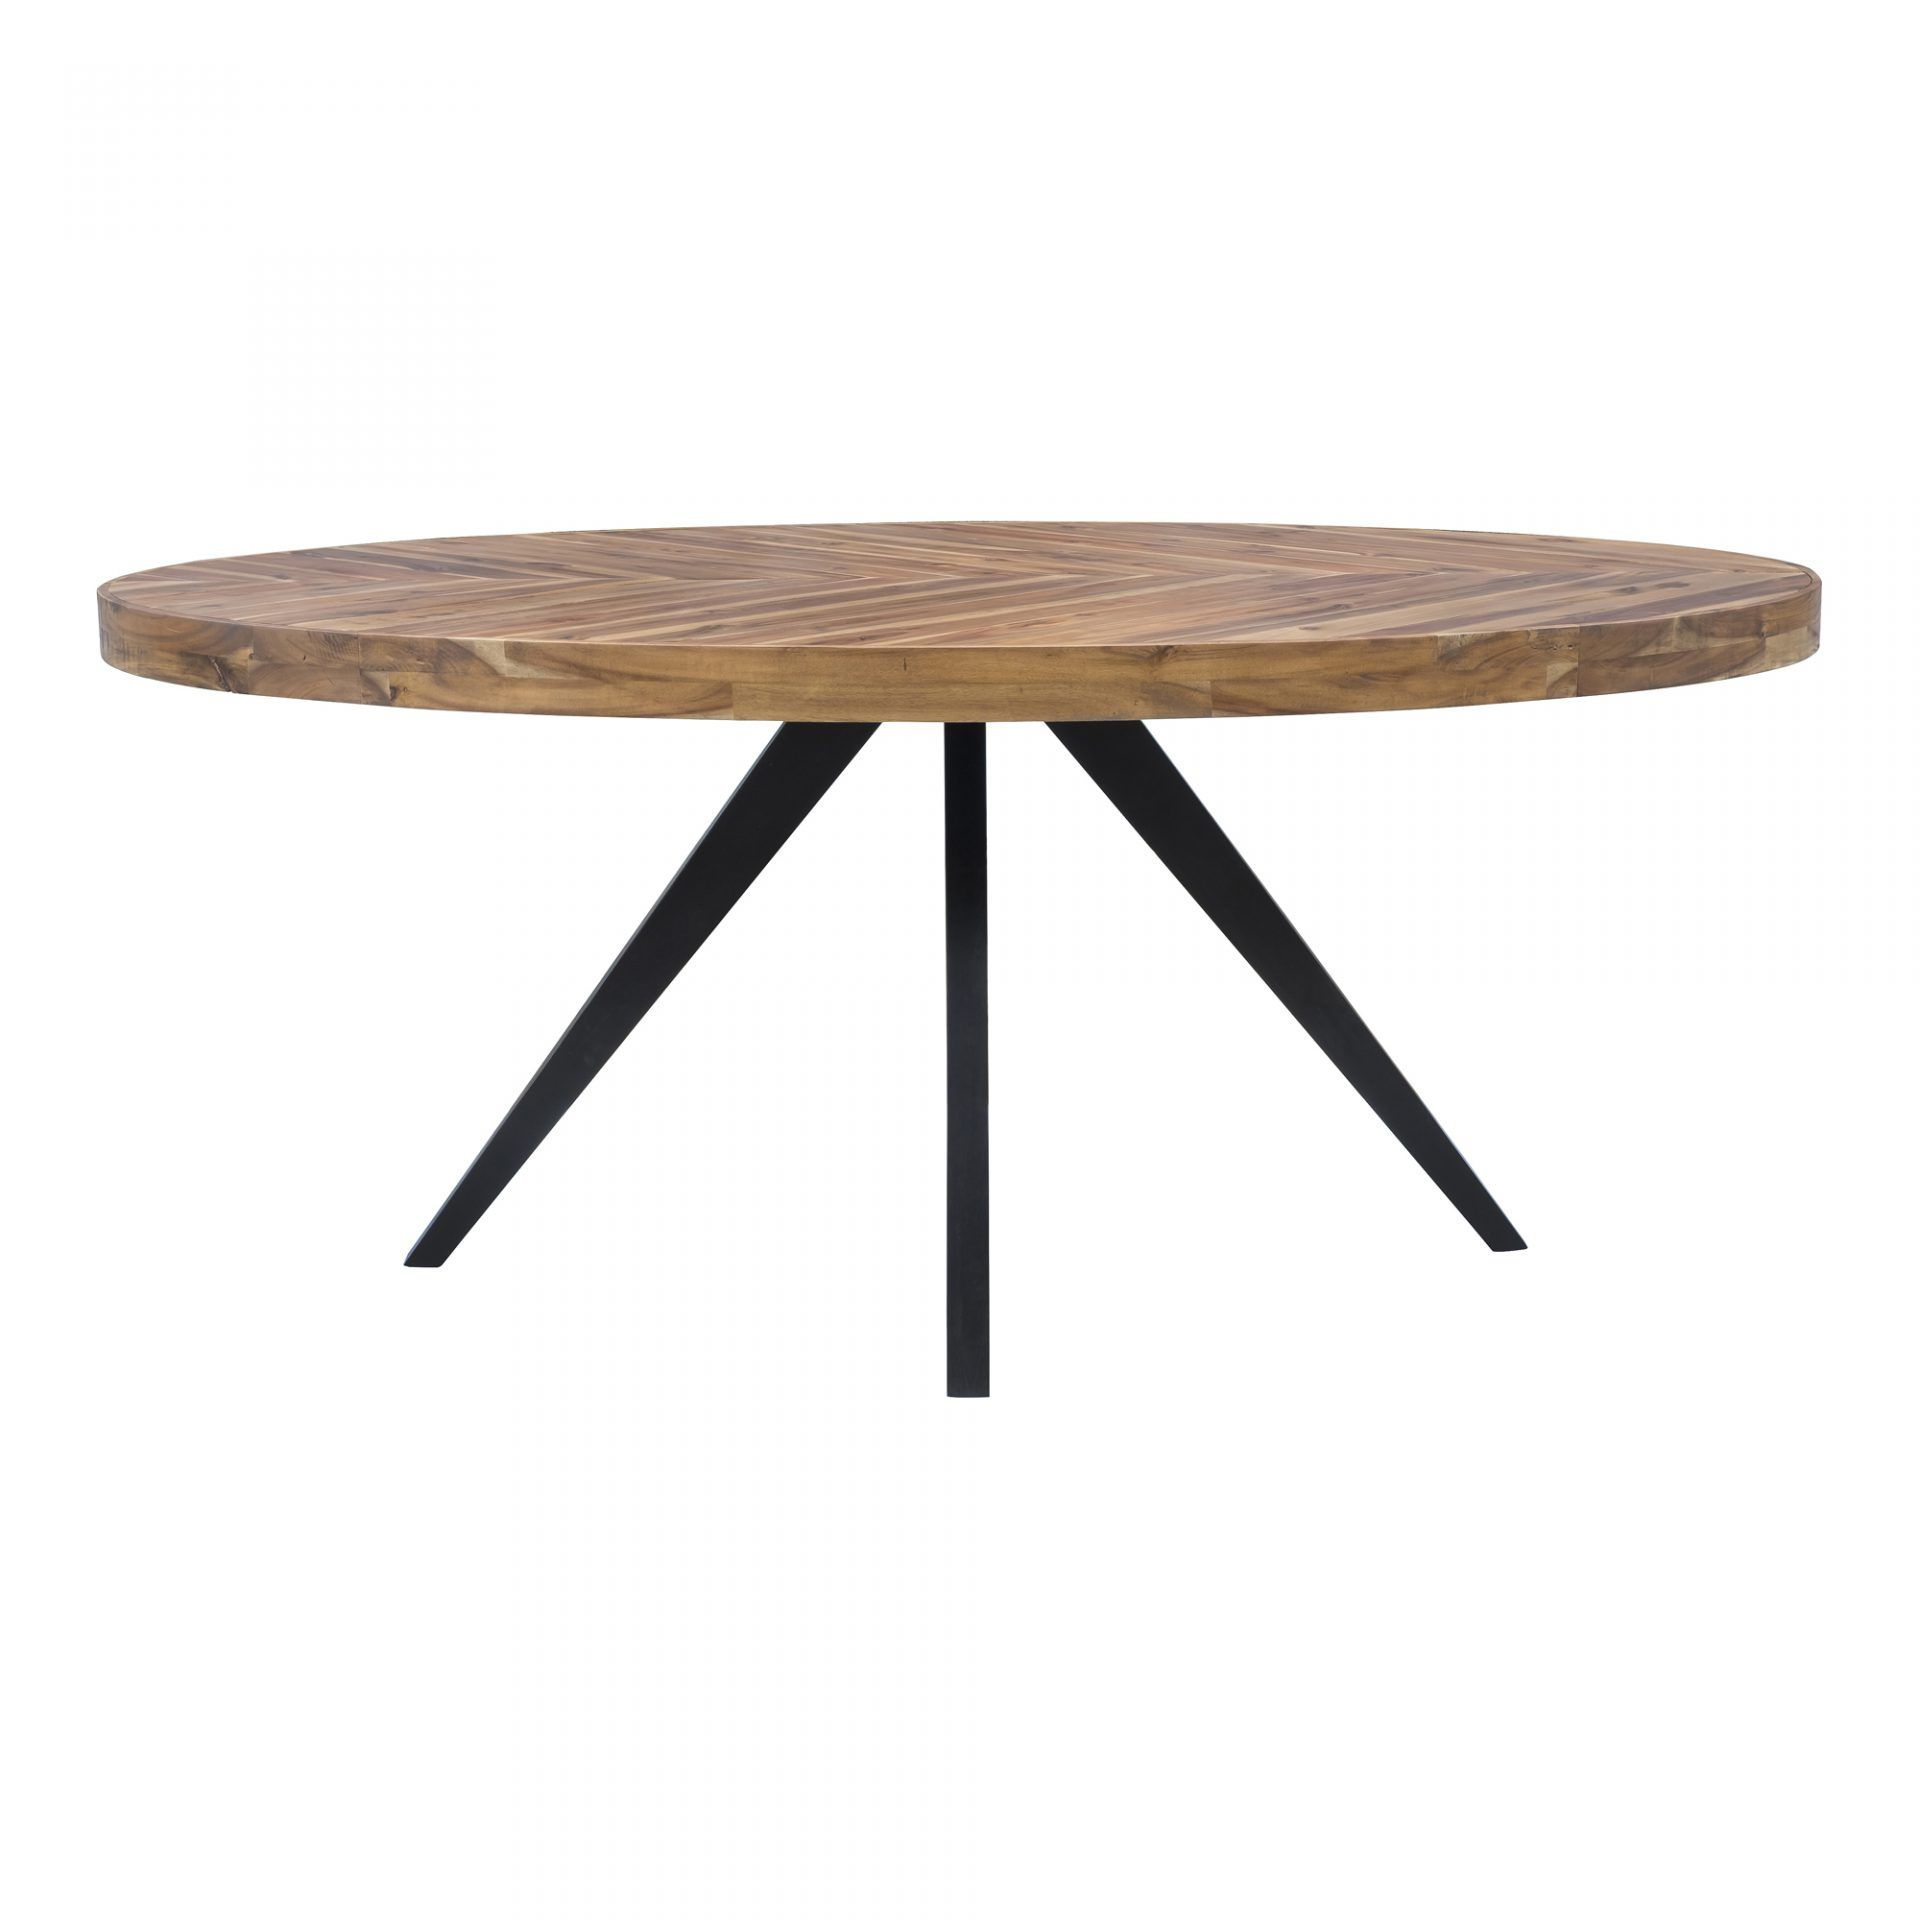 Osgo Home Parq Oval Dining Table In 2021 Oval Table Dining Dining Table In Kitchen Modern Rustic Dining Table